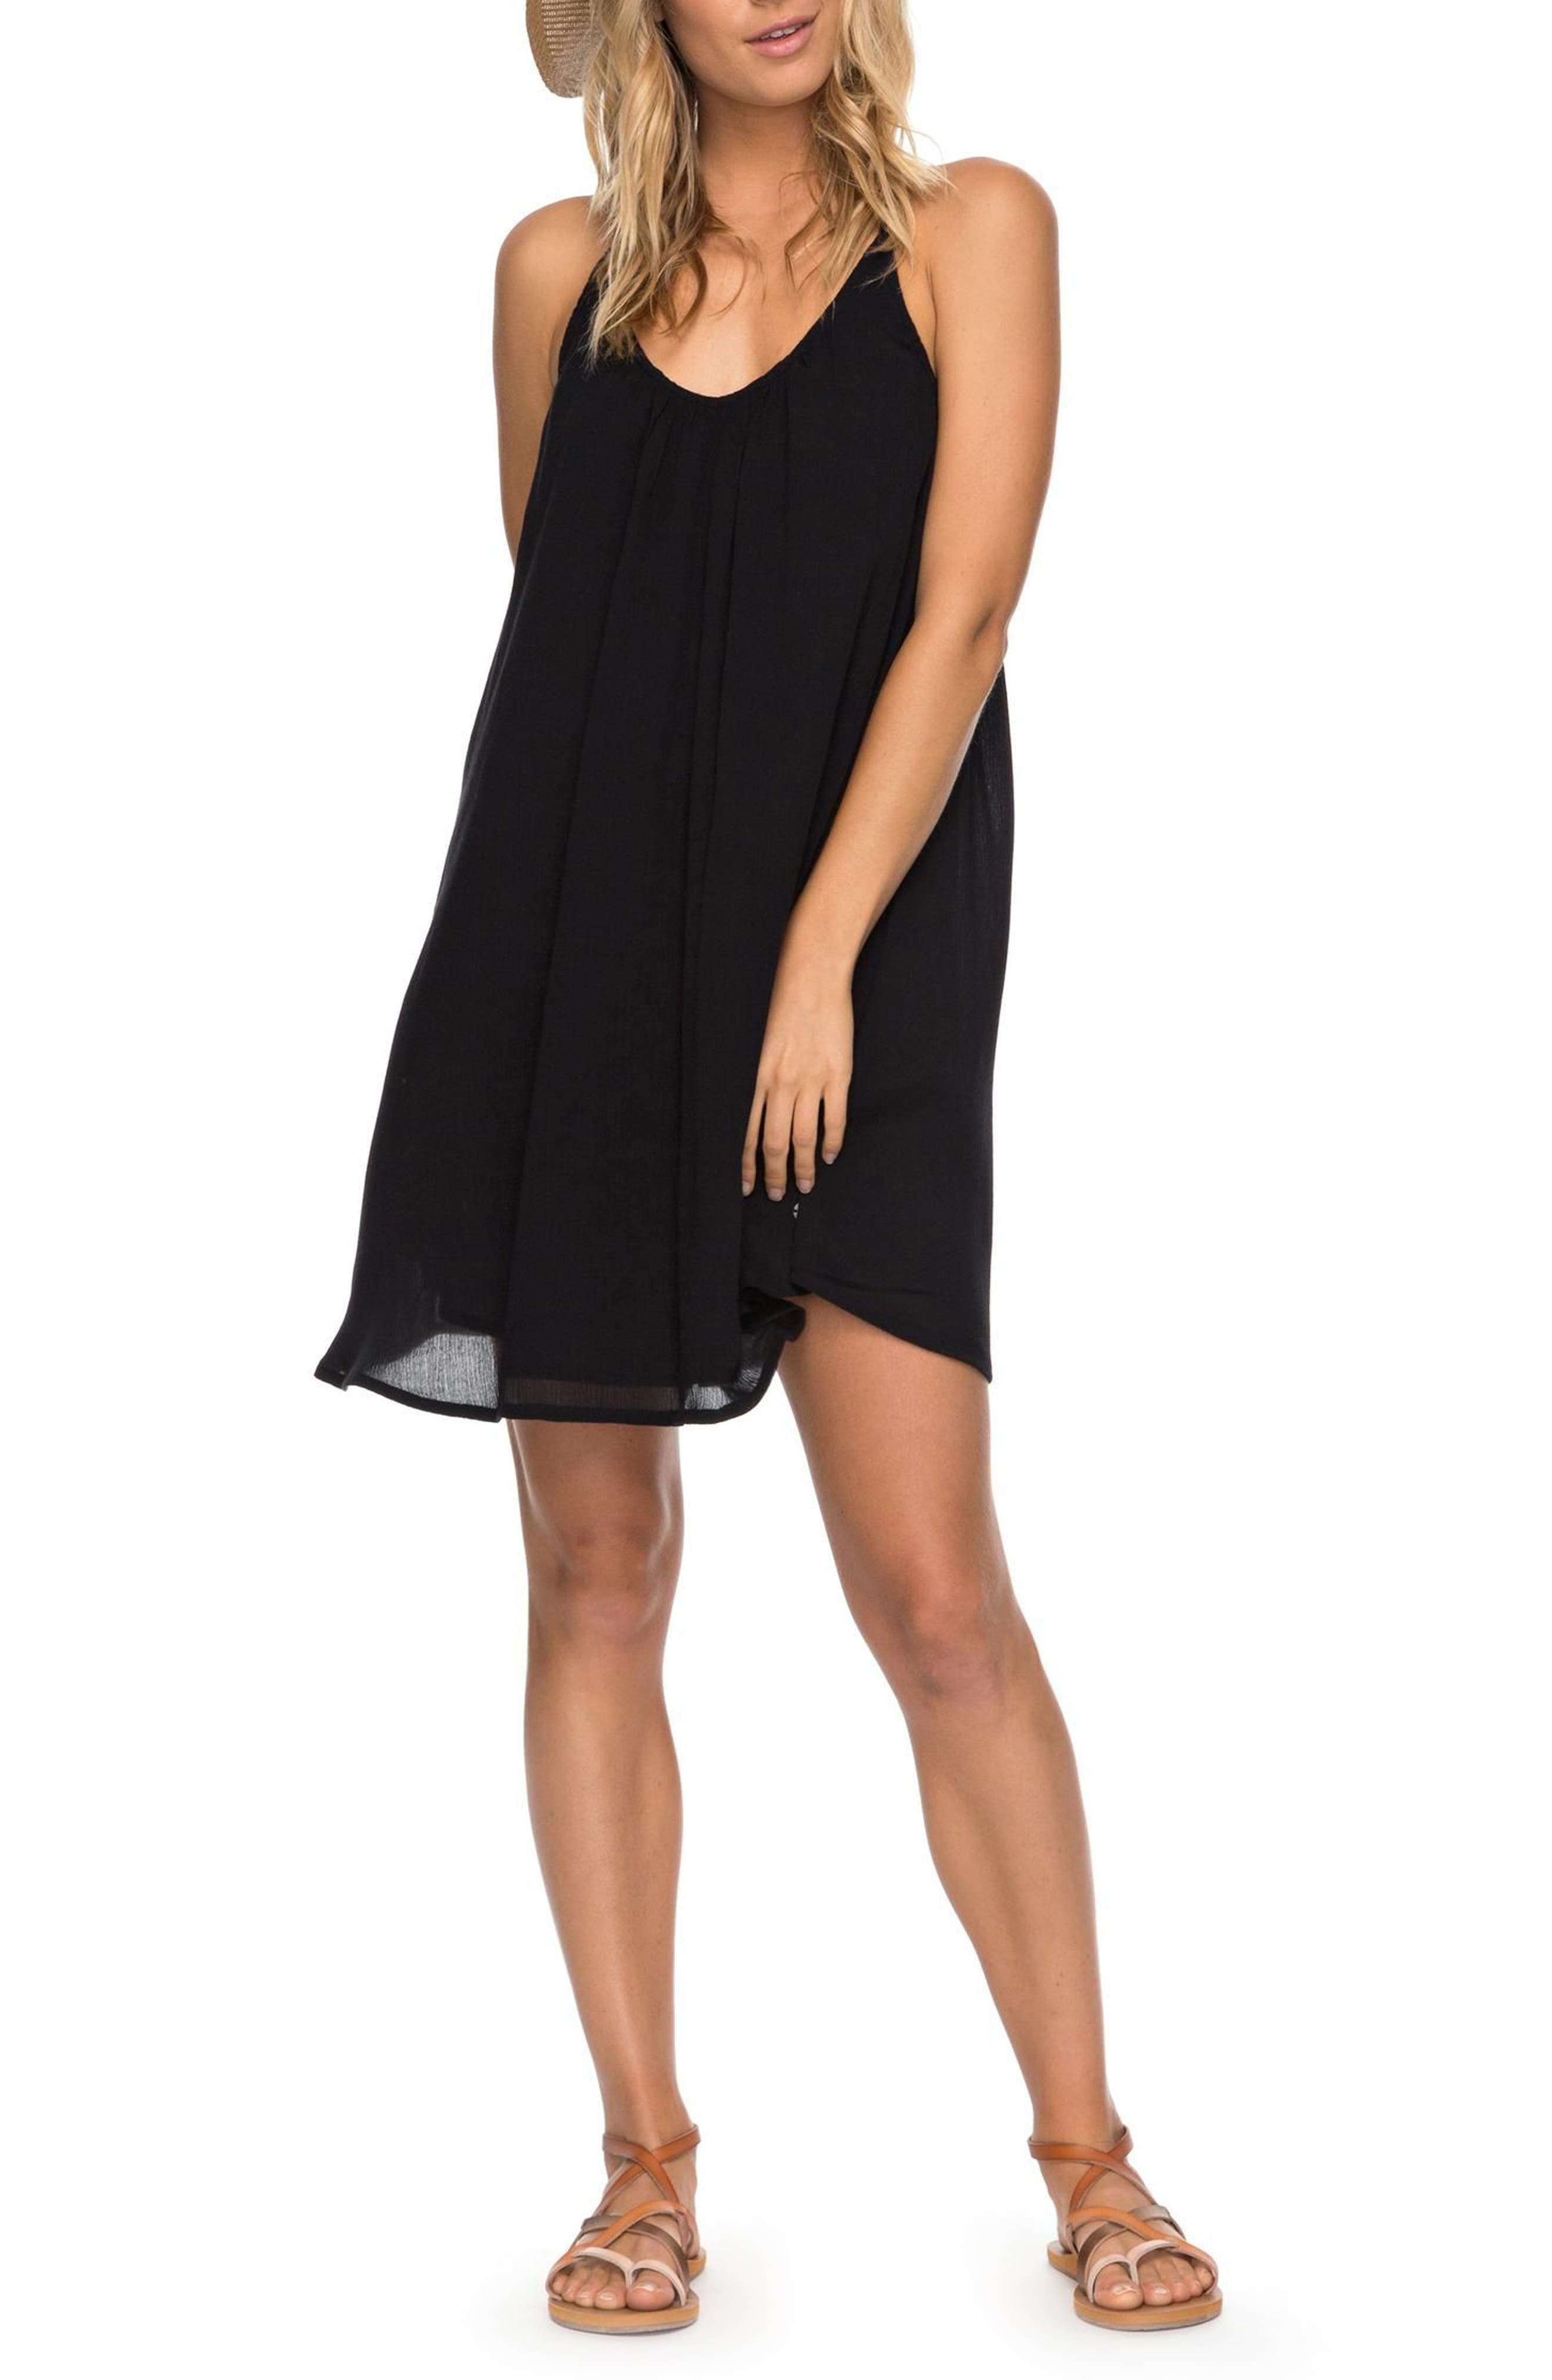 Great Intentions Trapeze Dress,                             Main thumbnail 1, color,                             021